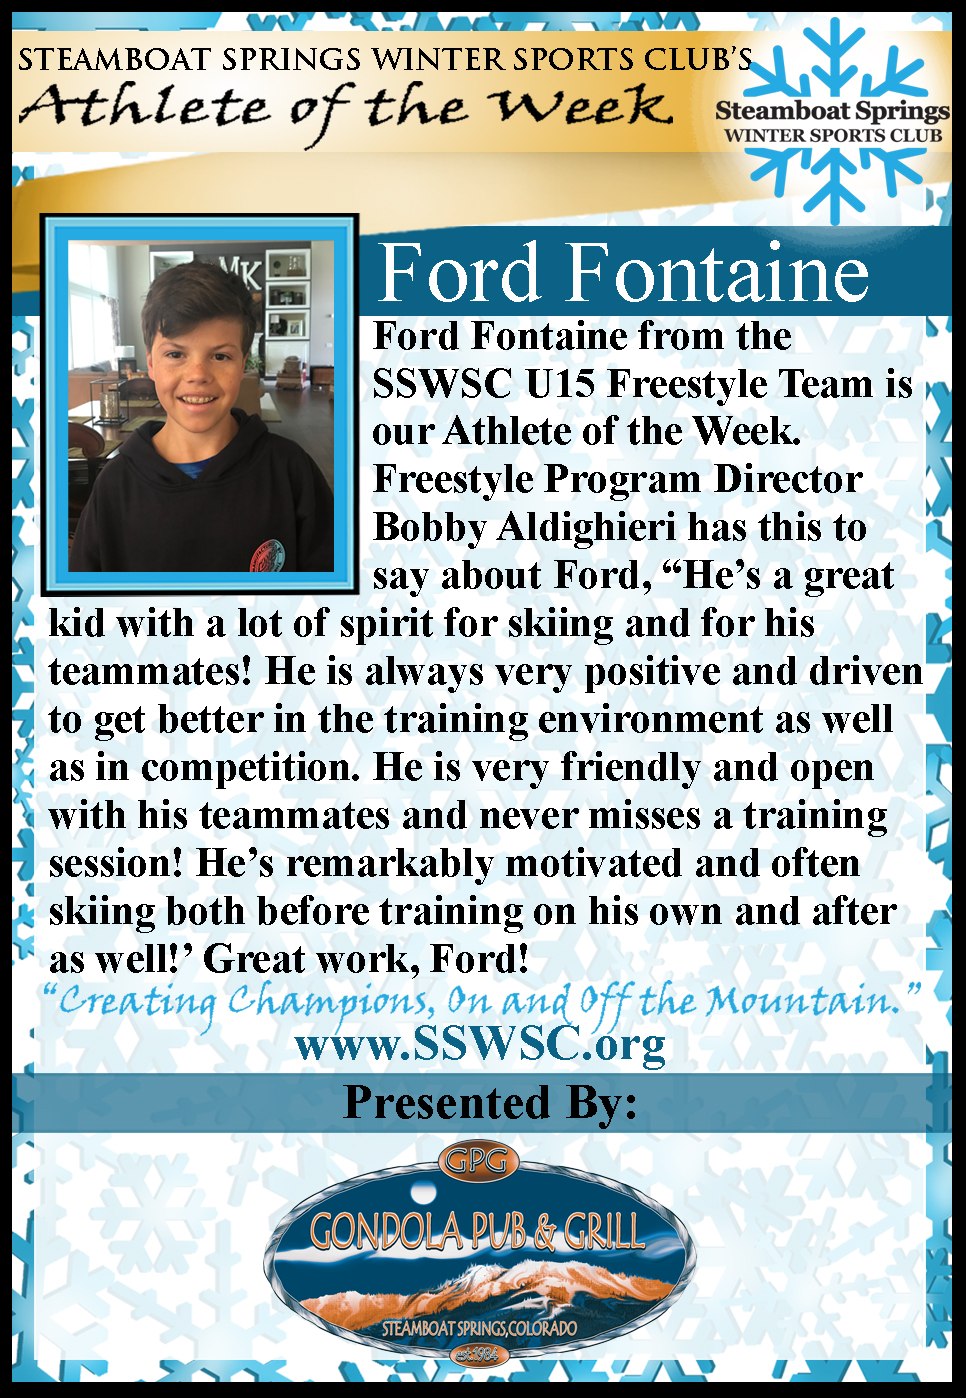 Athlete of the Week, Ford Fontaine